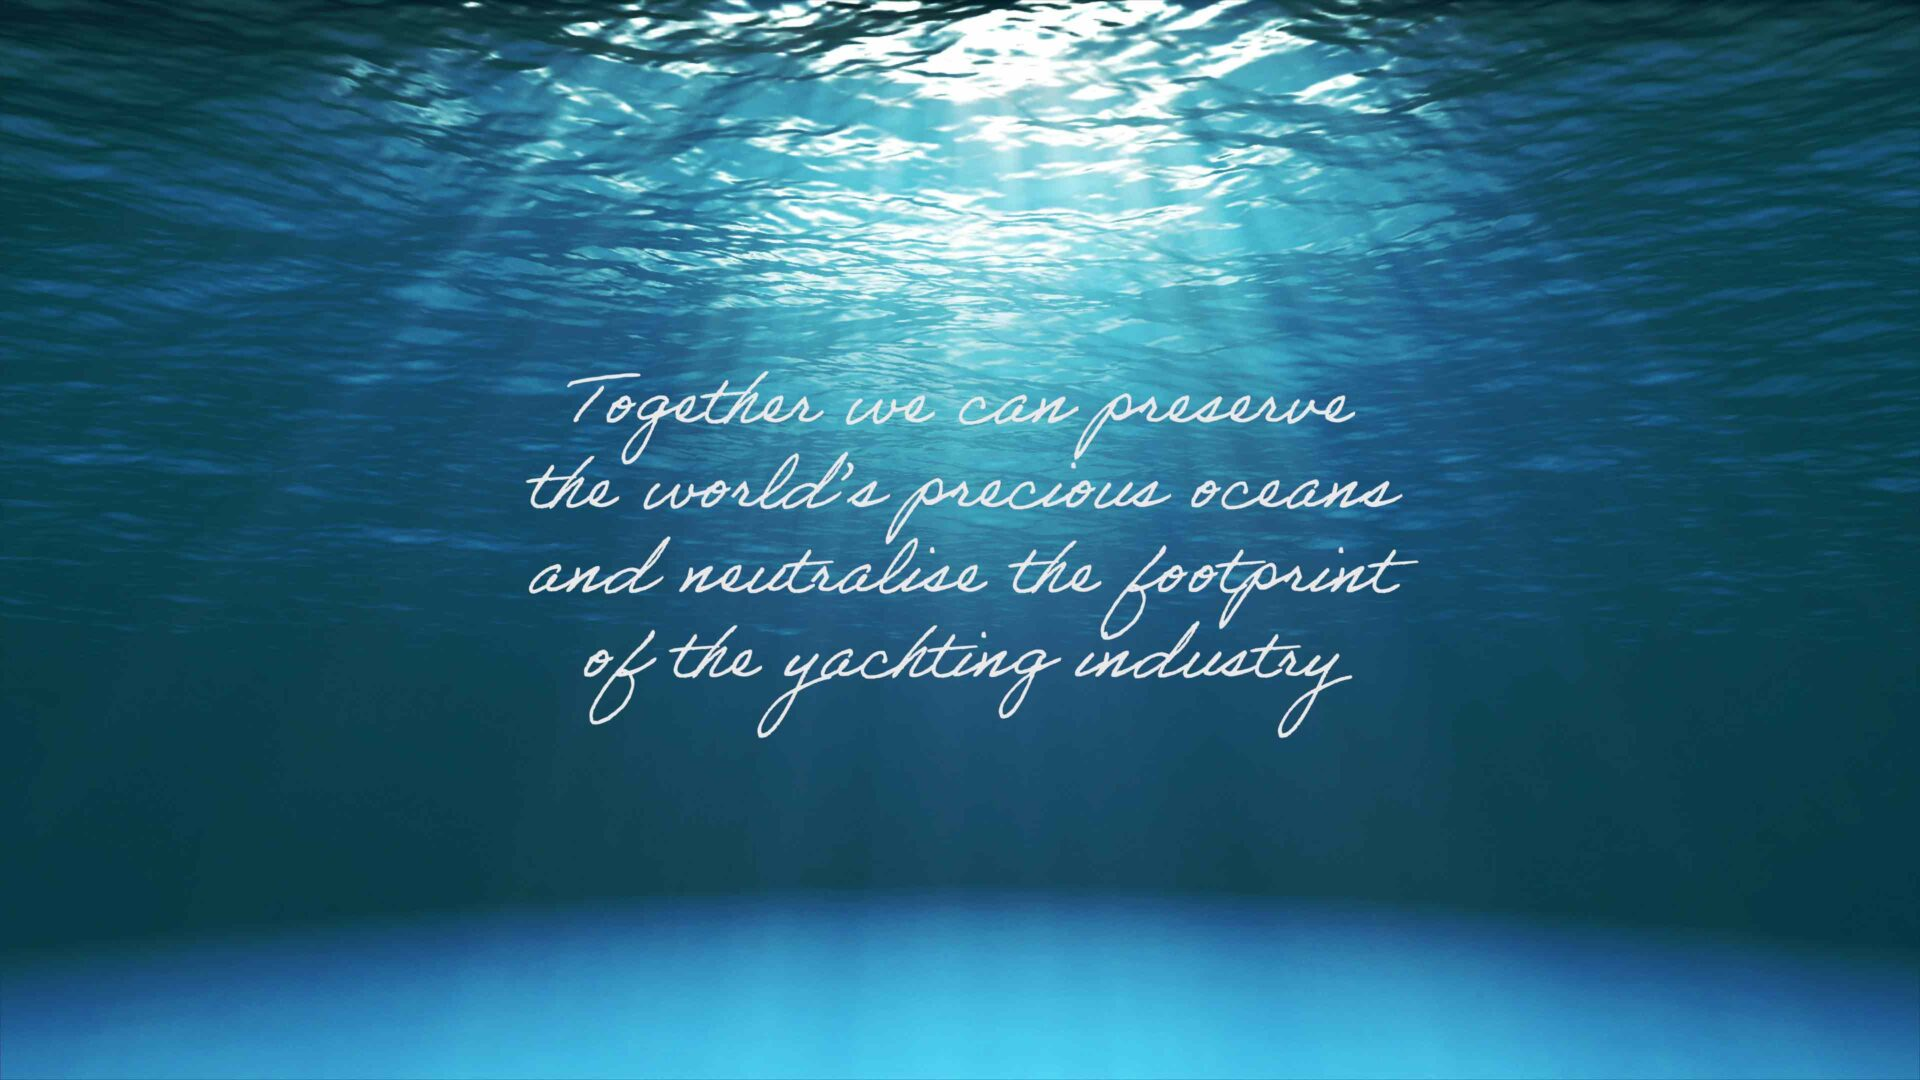 quote about sustainable yacht design